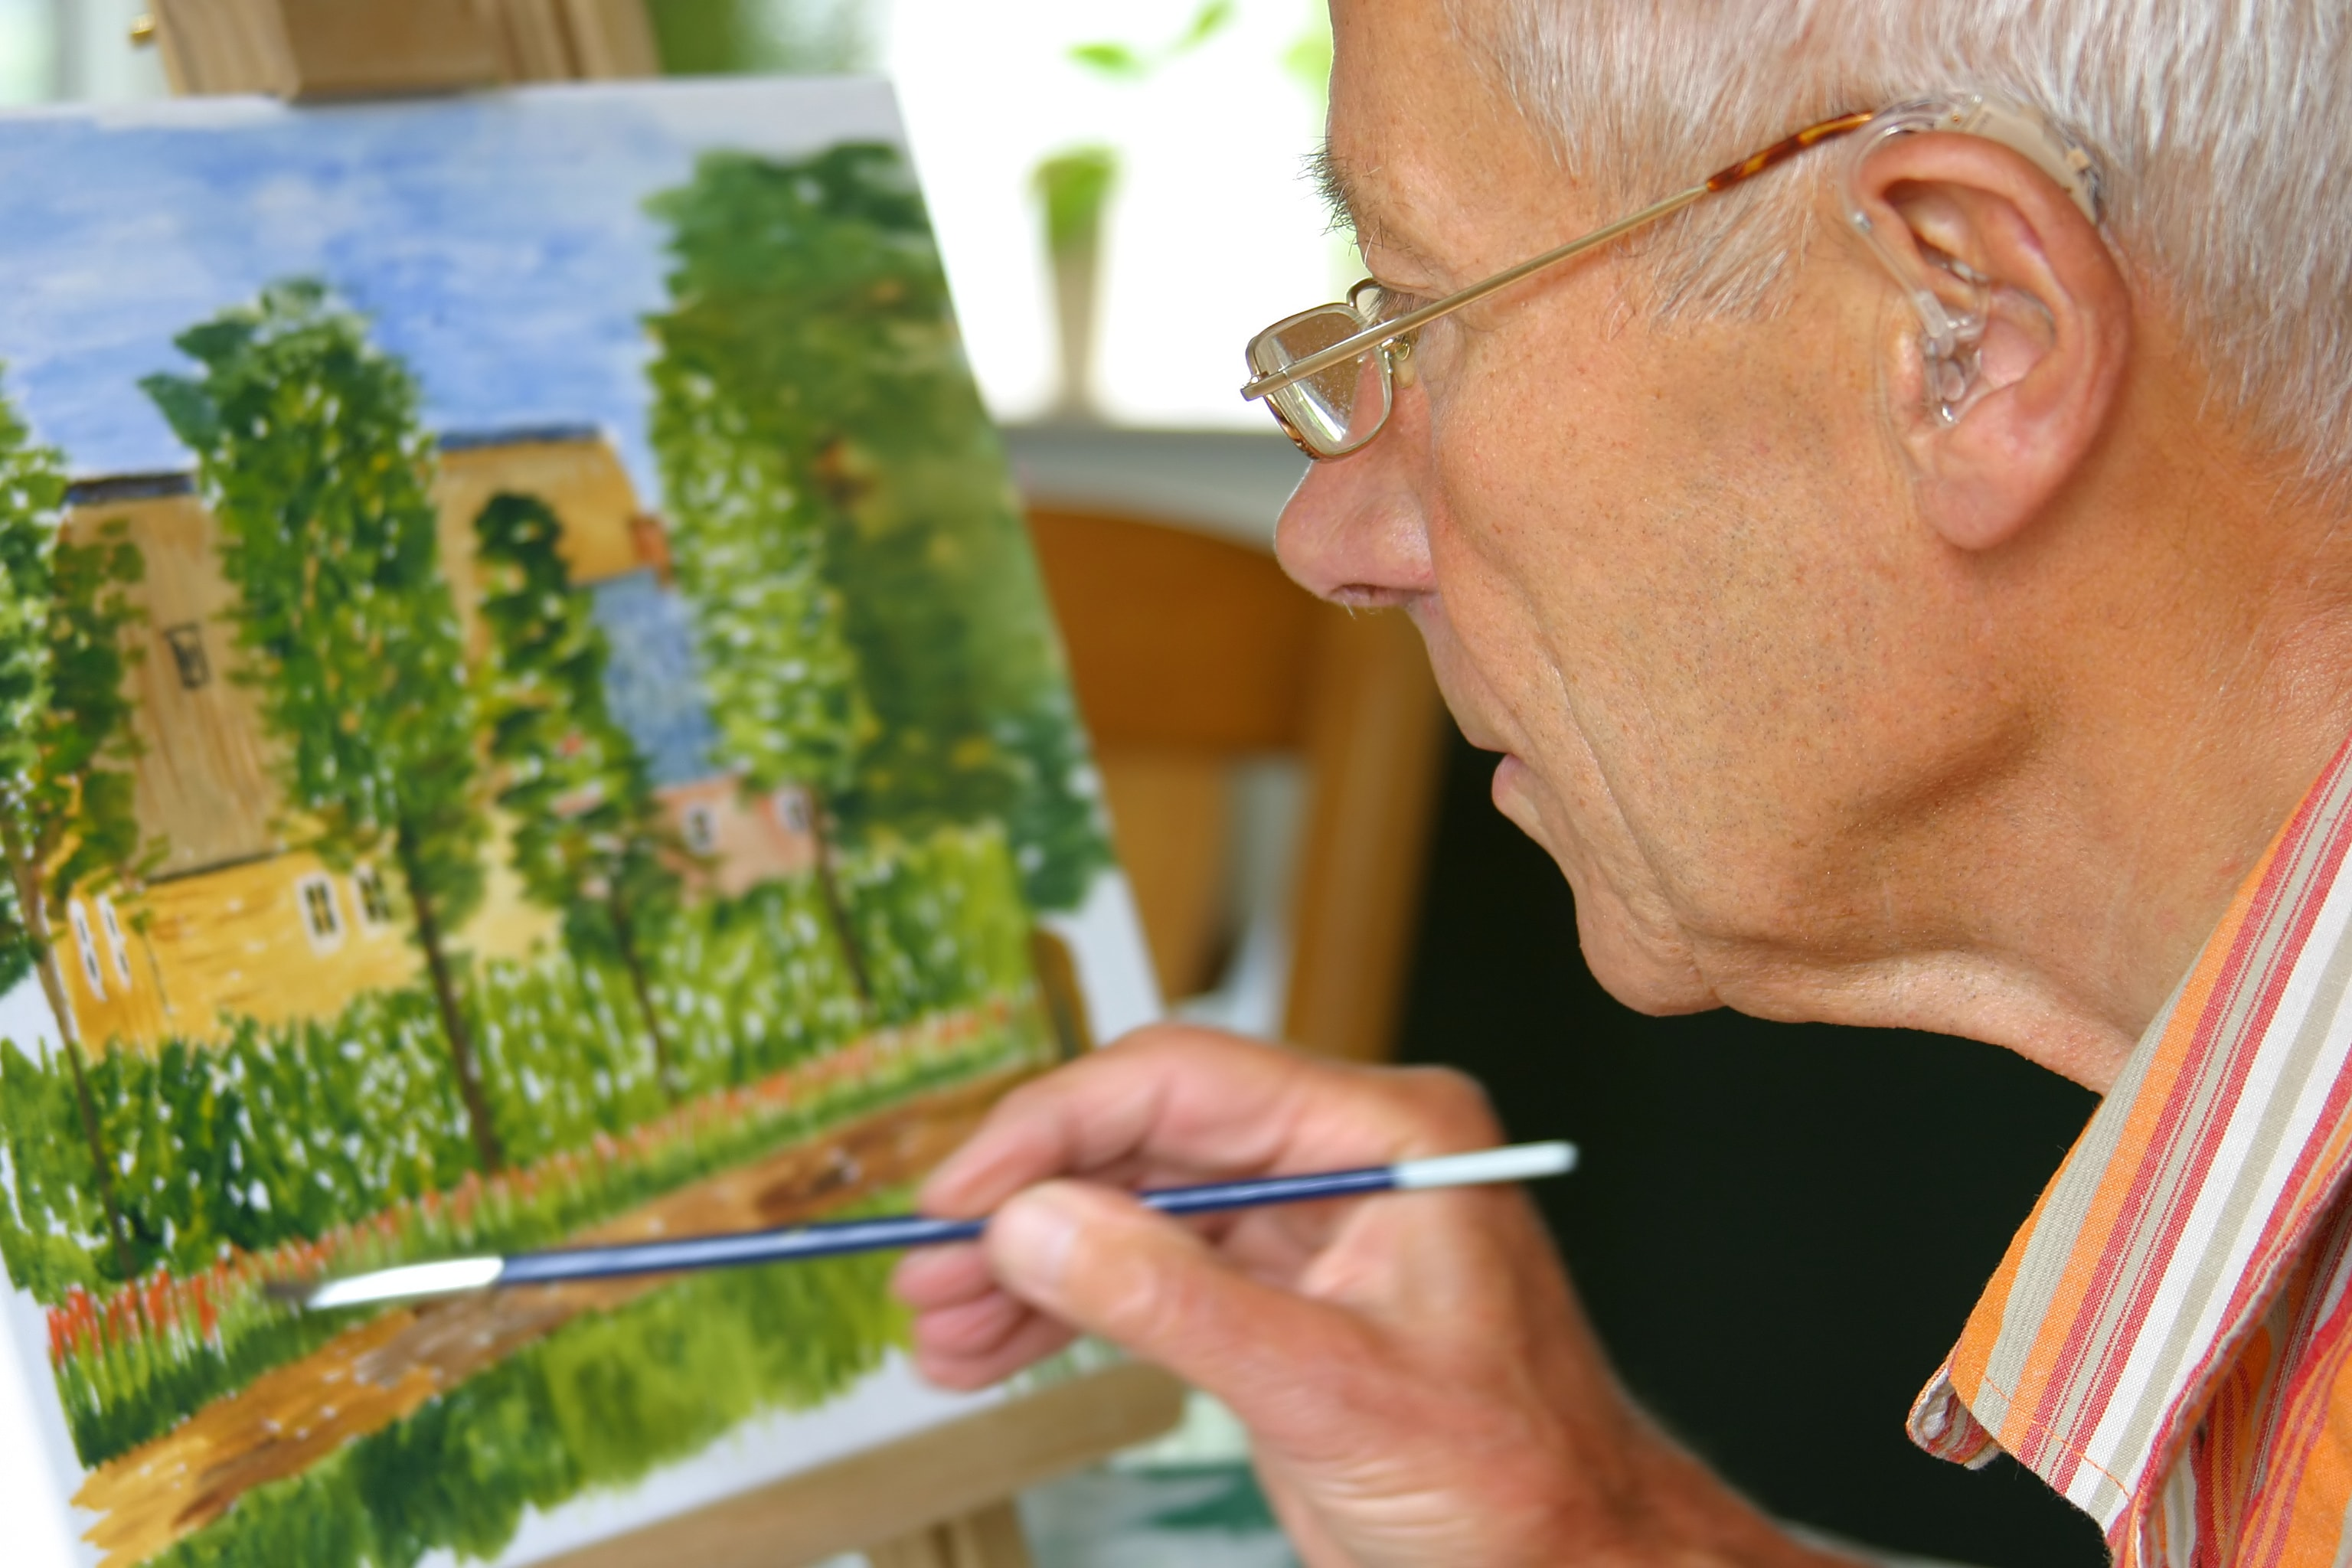 Best Indoor Hobbies for Seniors That Benefit Both the Body & Mind